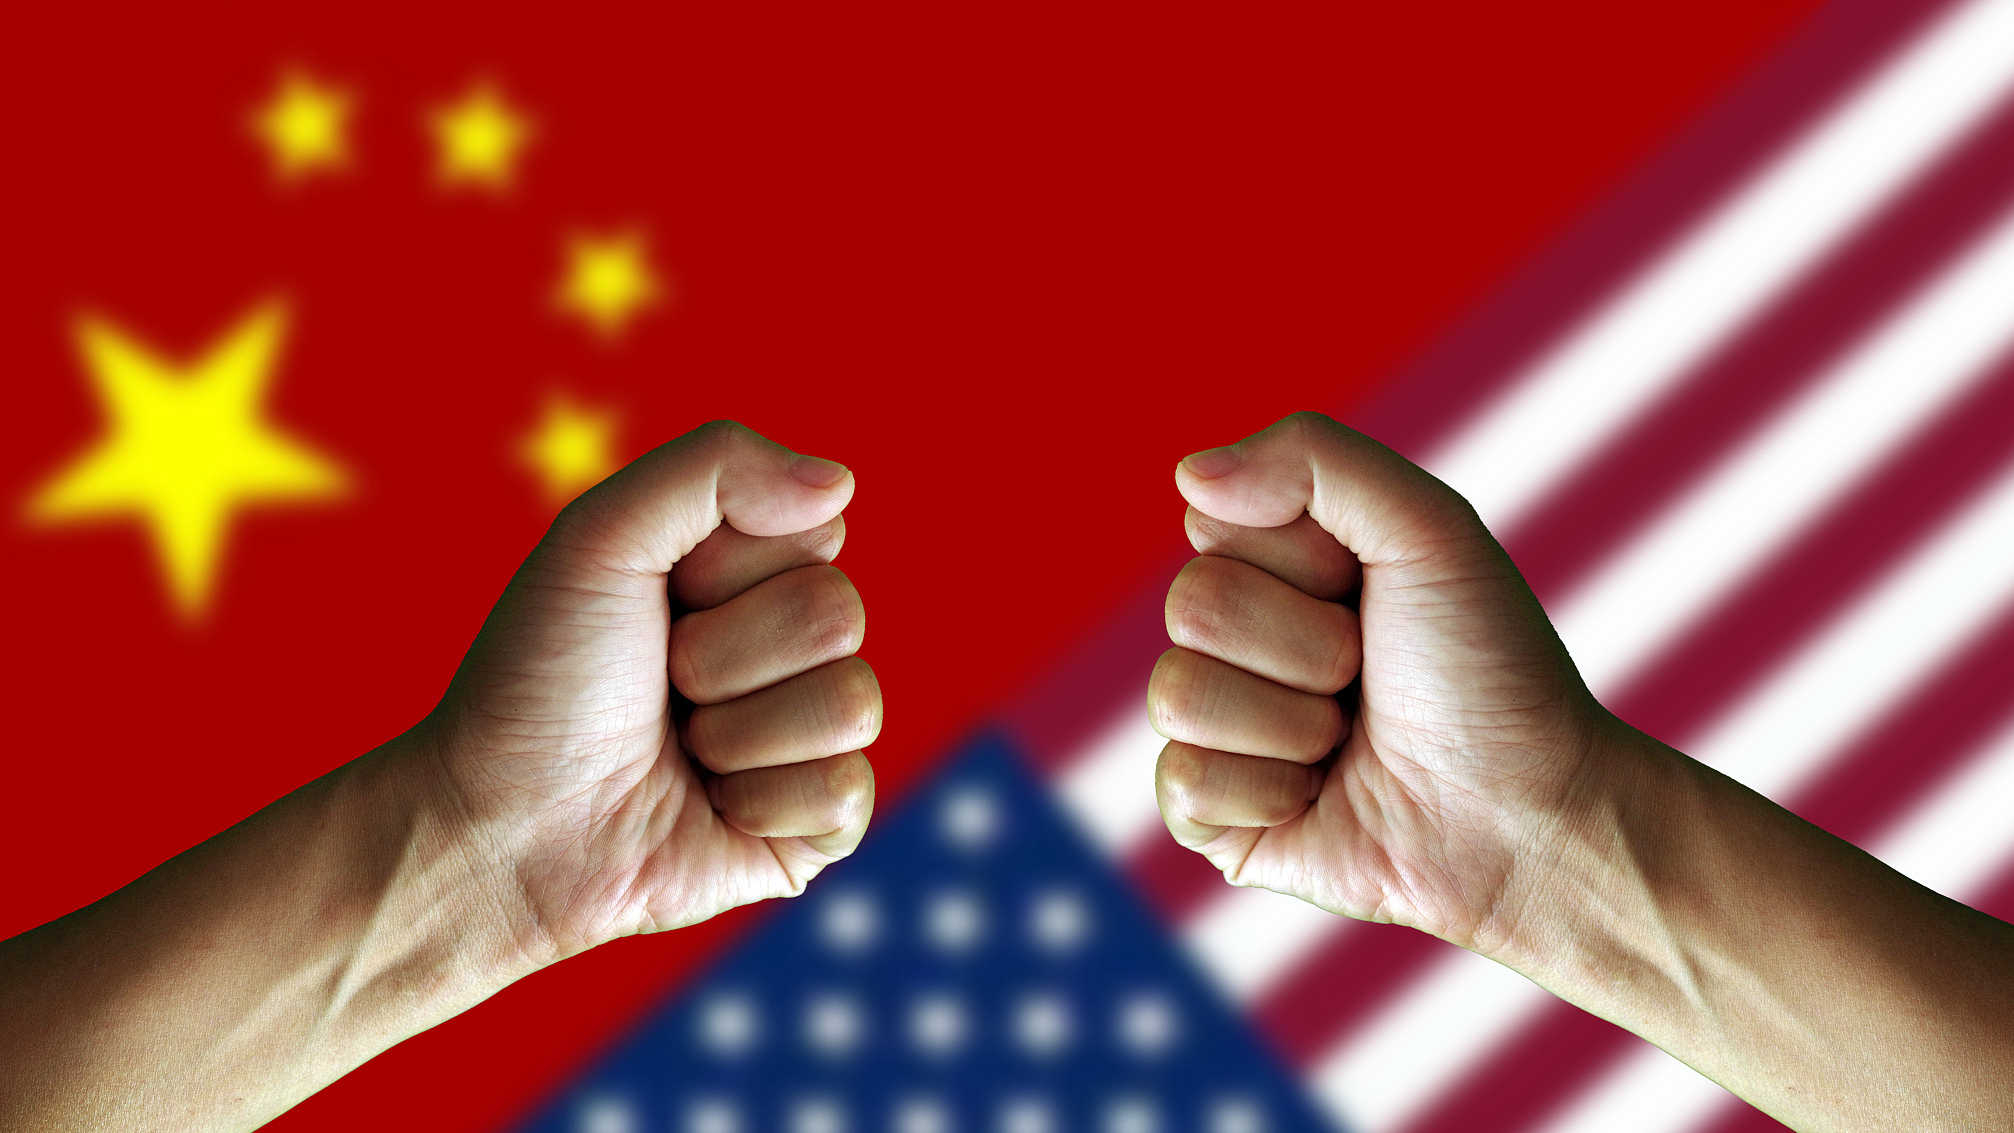 MOFA: China to protect legitimate rights over new US tariff threat